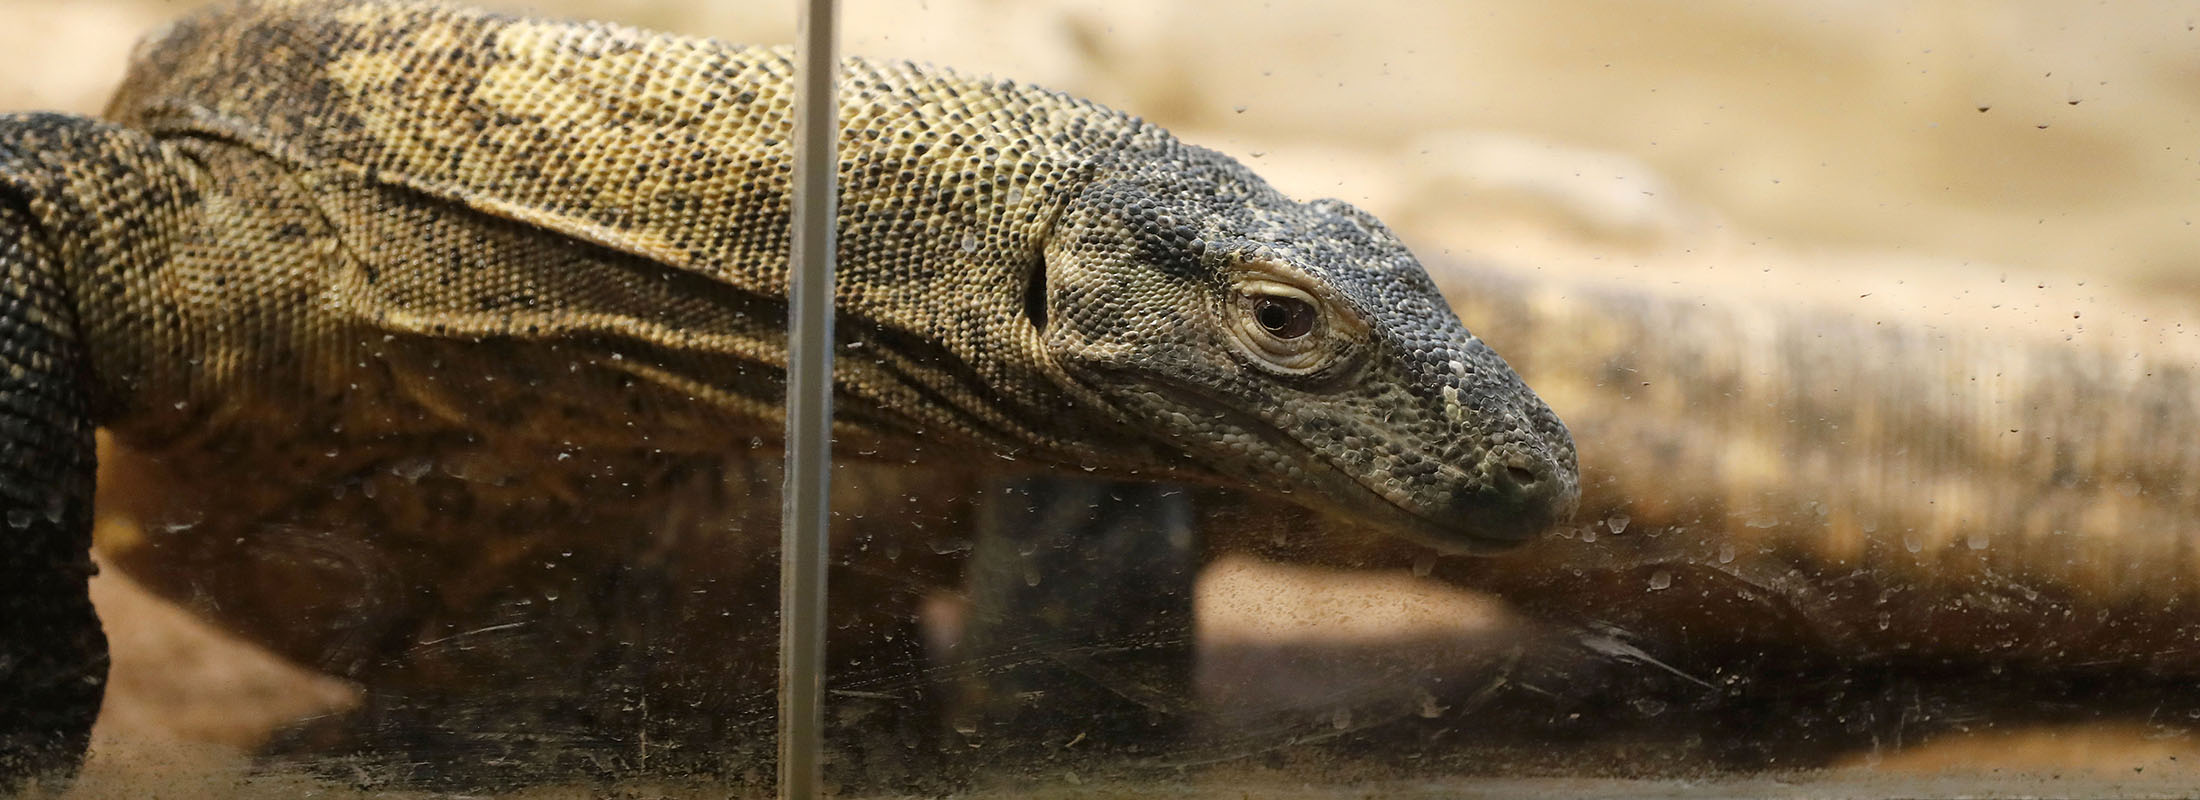 The Buffalo Zoo's new Komodo dragon walks through its exhibit, which is set to open to the public Friday. (Mark Mulville/Buffalo News)